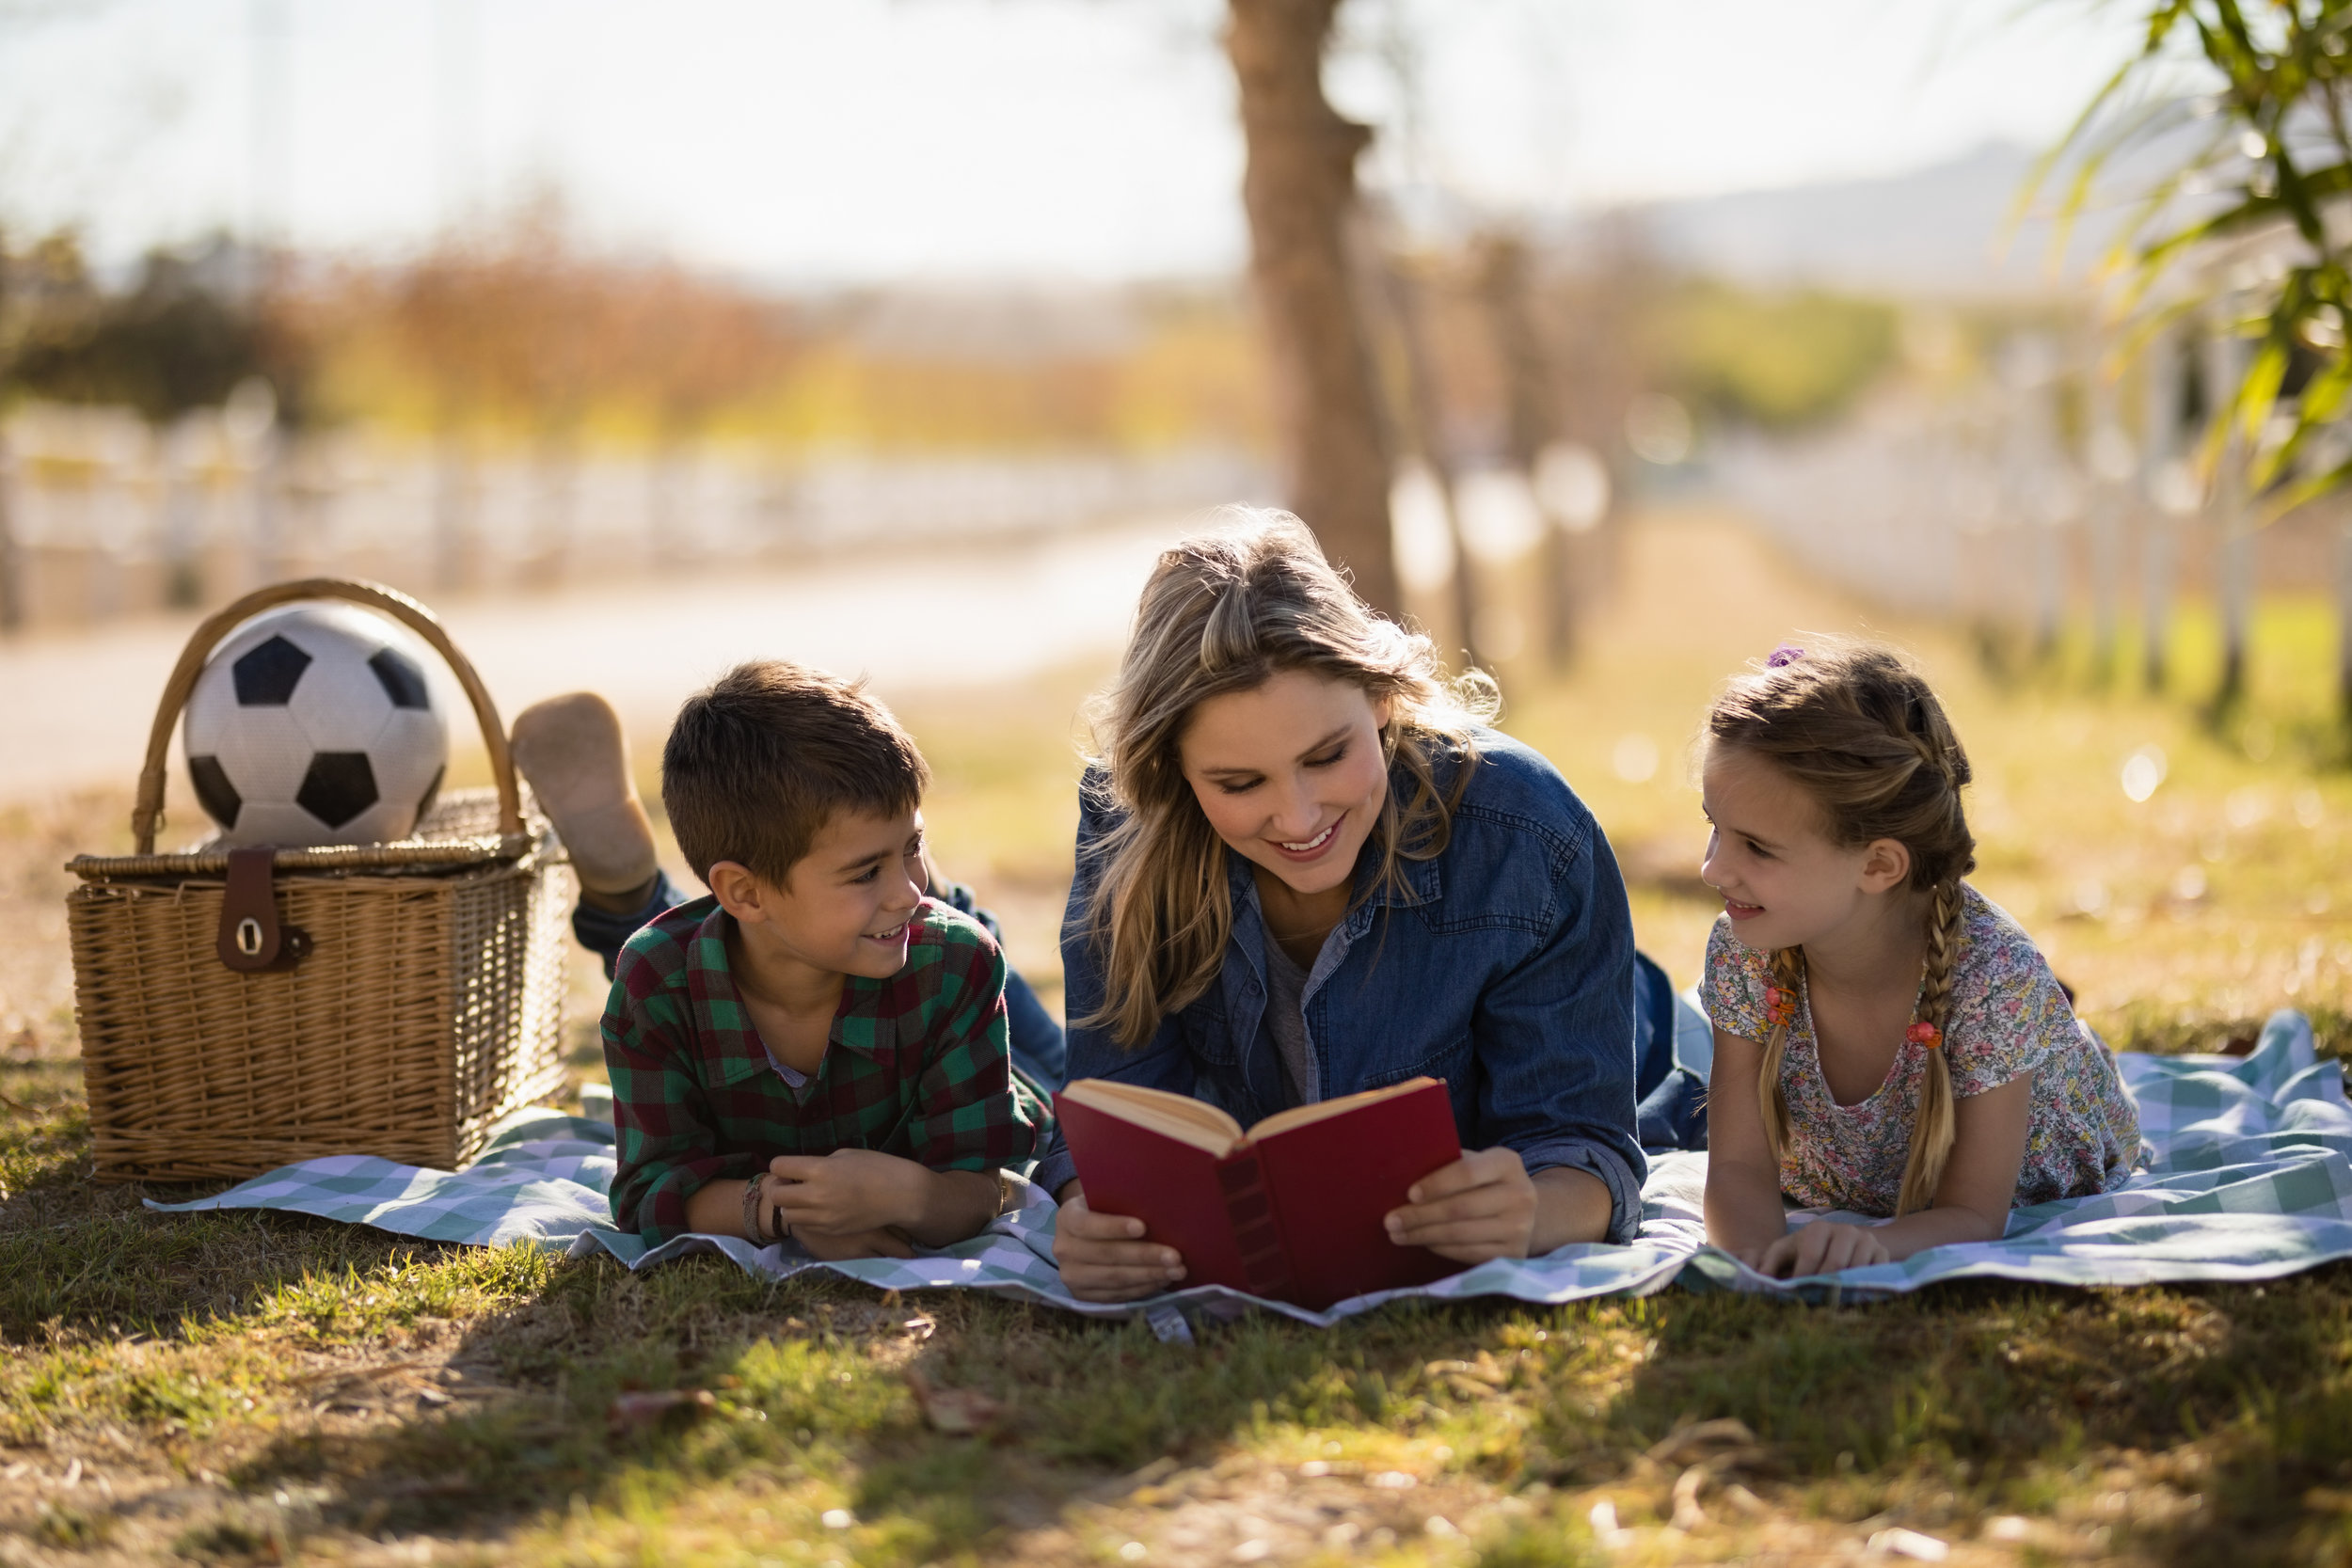 mother-and-kids-reading-novel-in-park-7CRSNZW.jpg